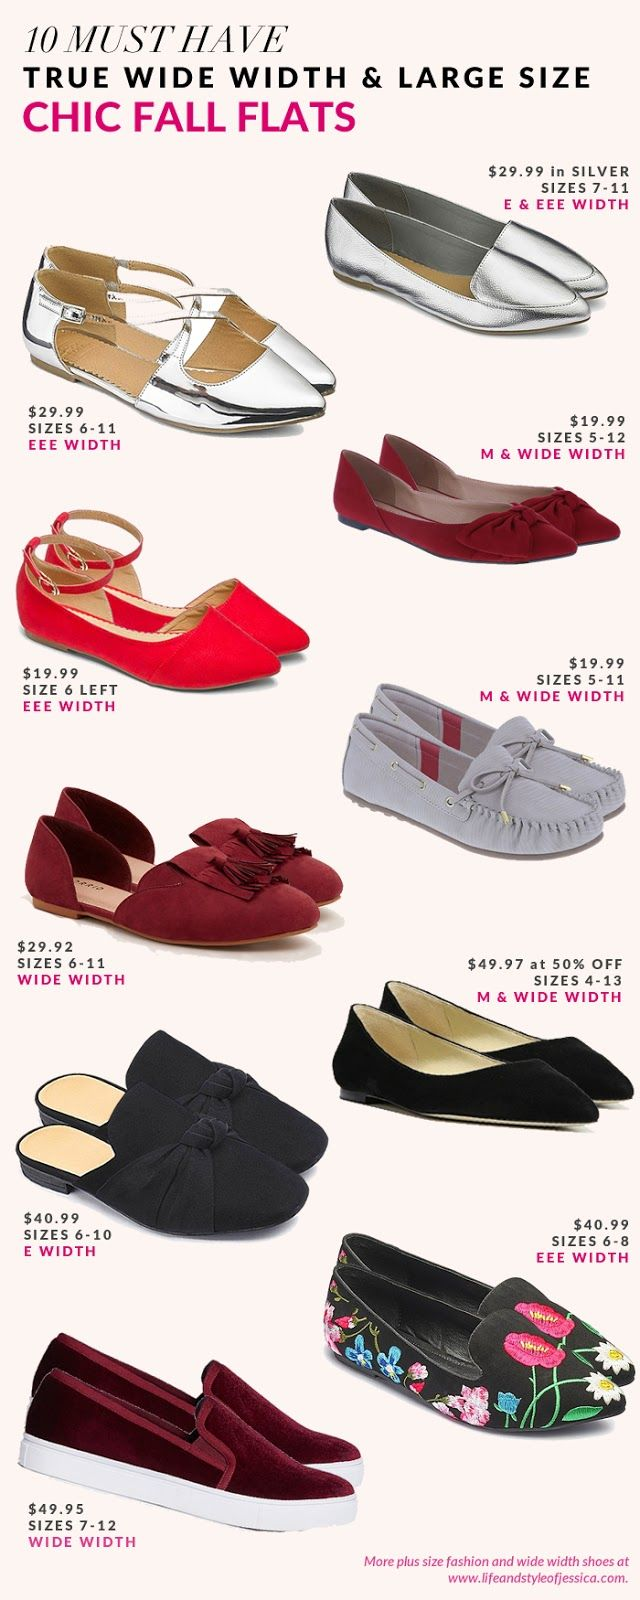 8f1cd067122 The queen of wide width and large size shoes just launched her annual must  have flats list!  3